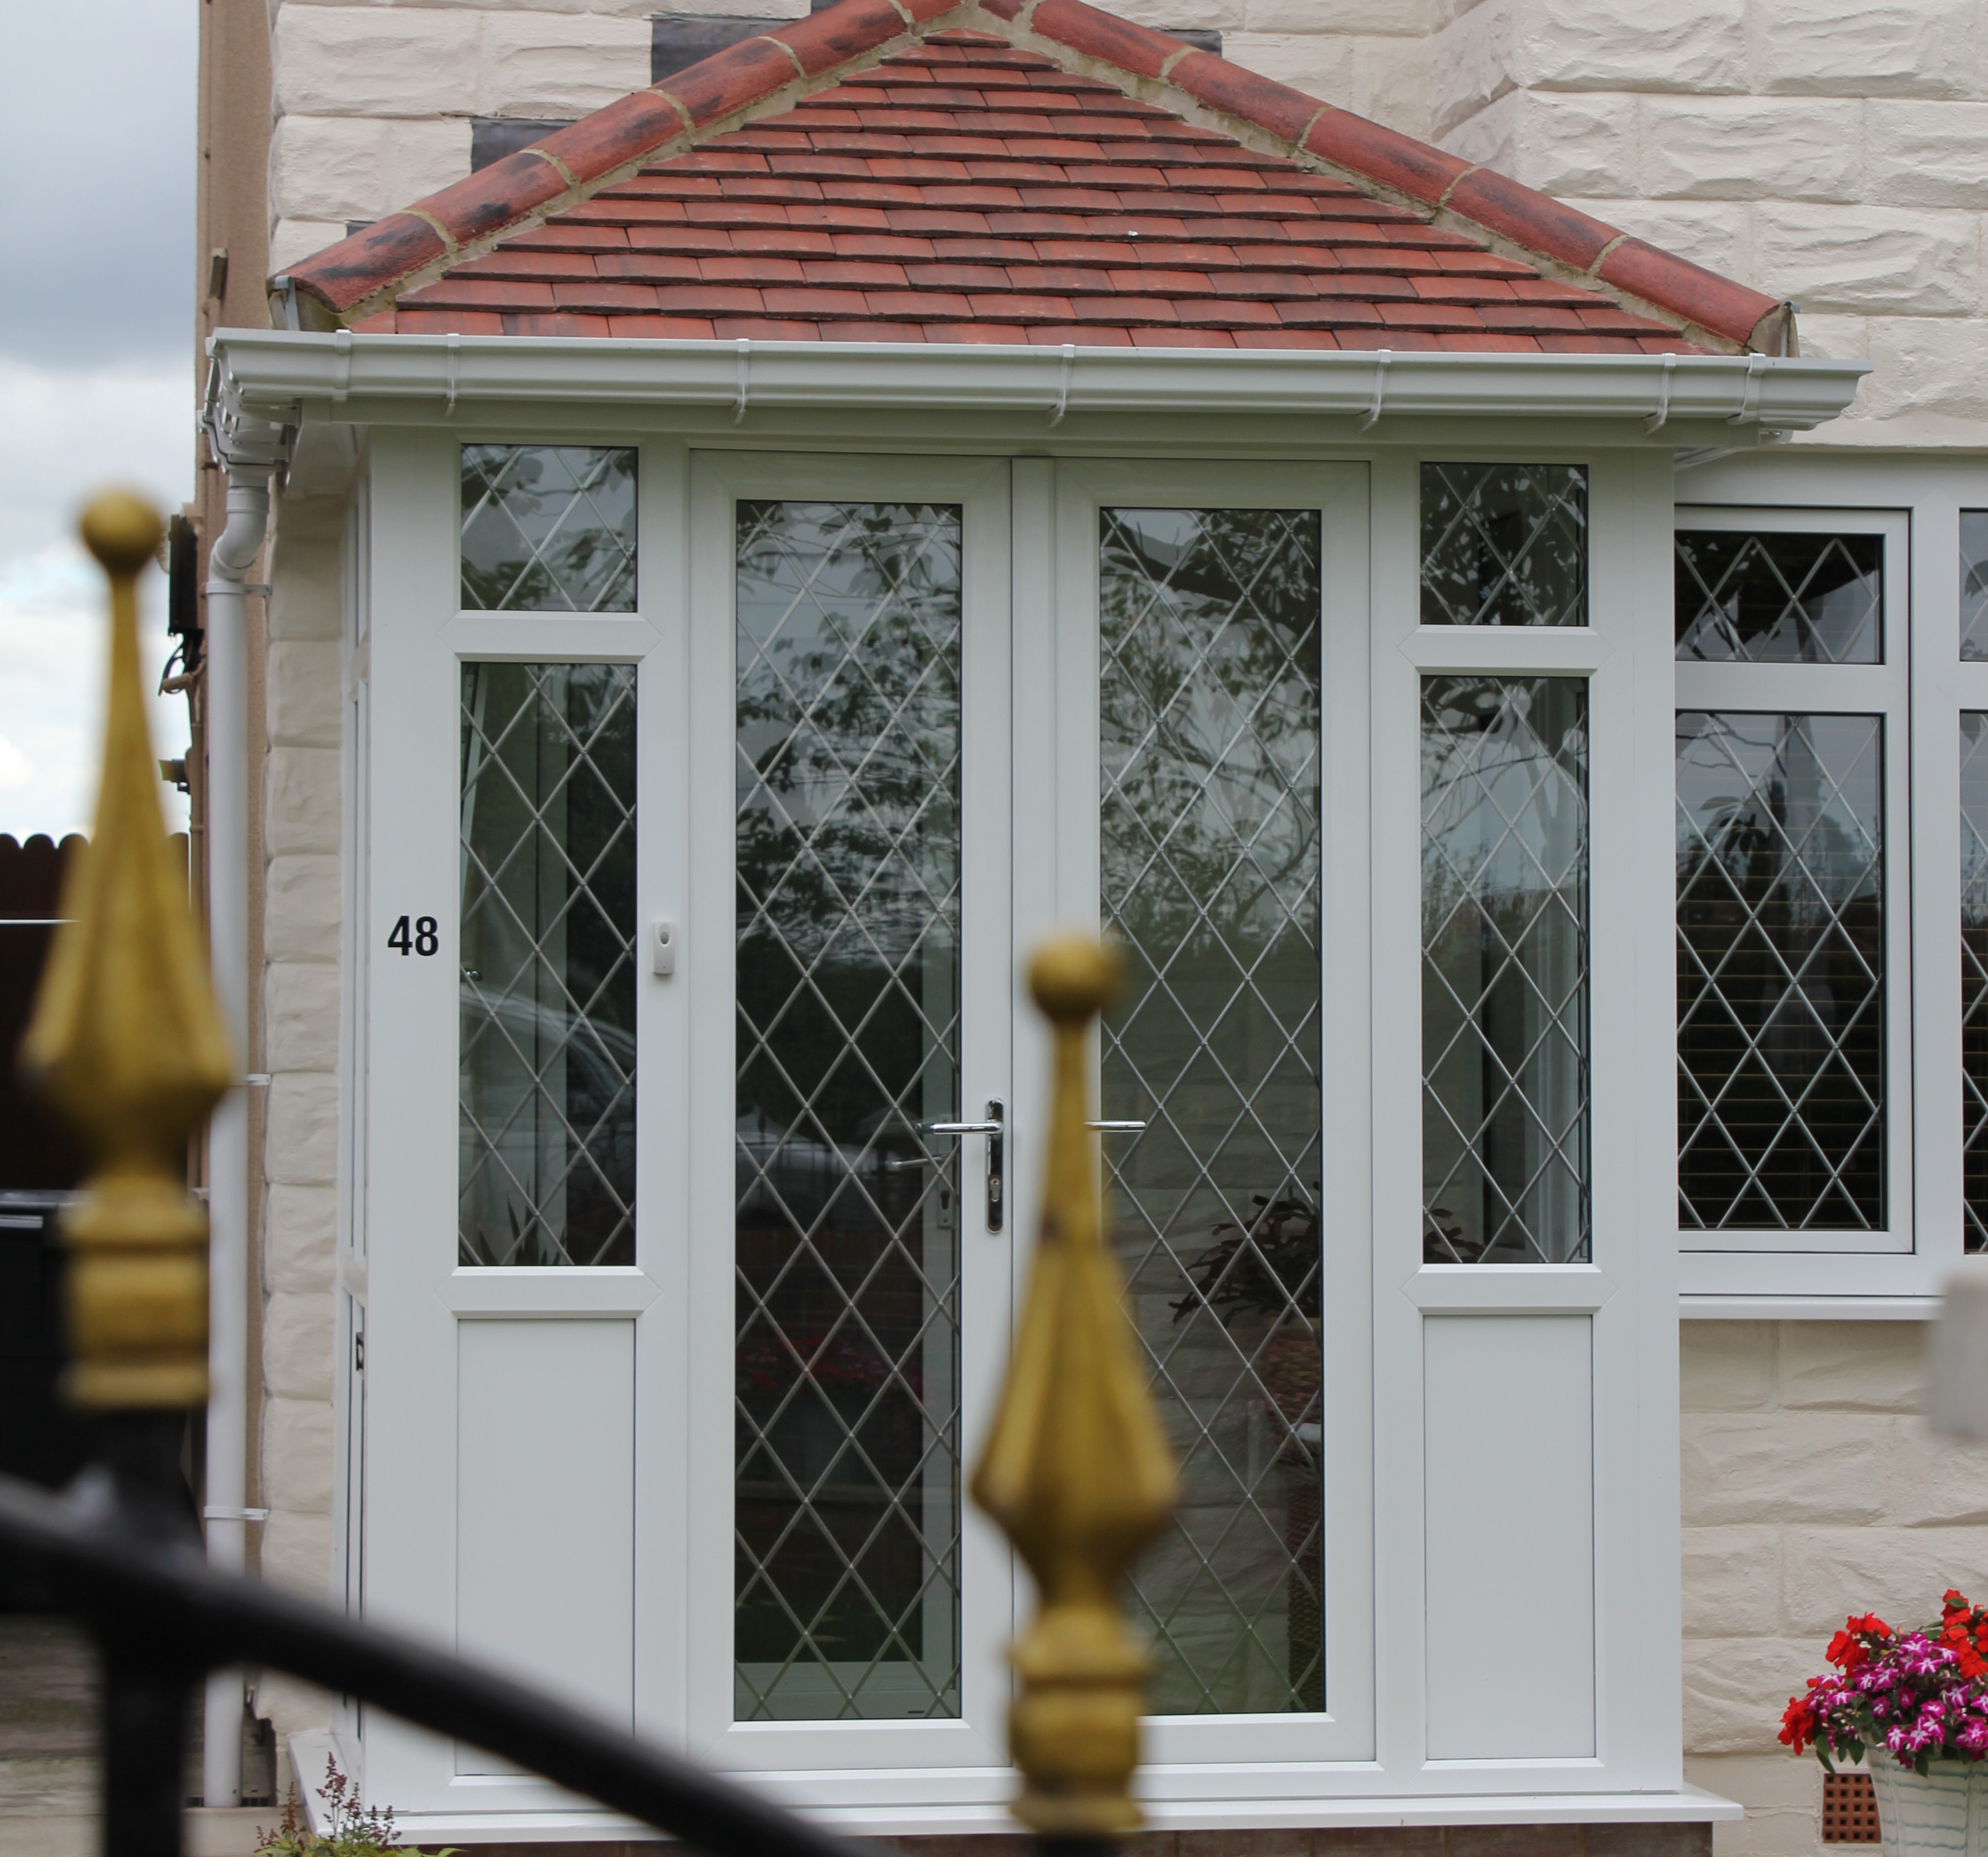 Porches for sale uk